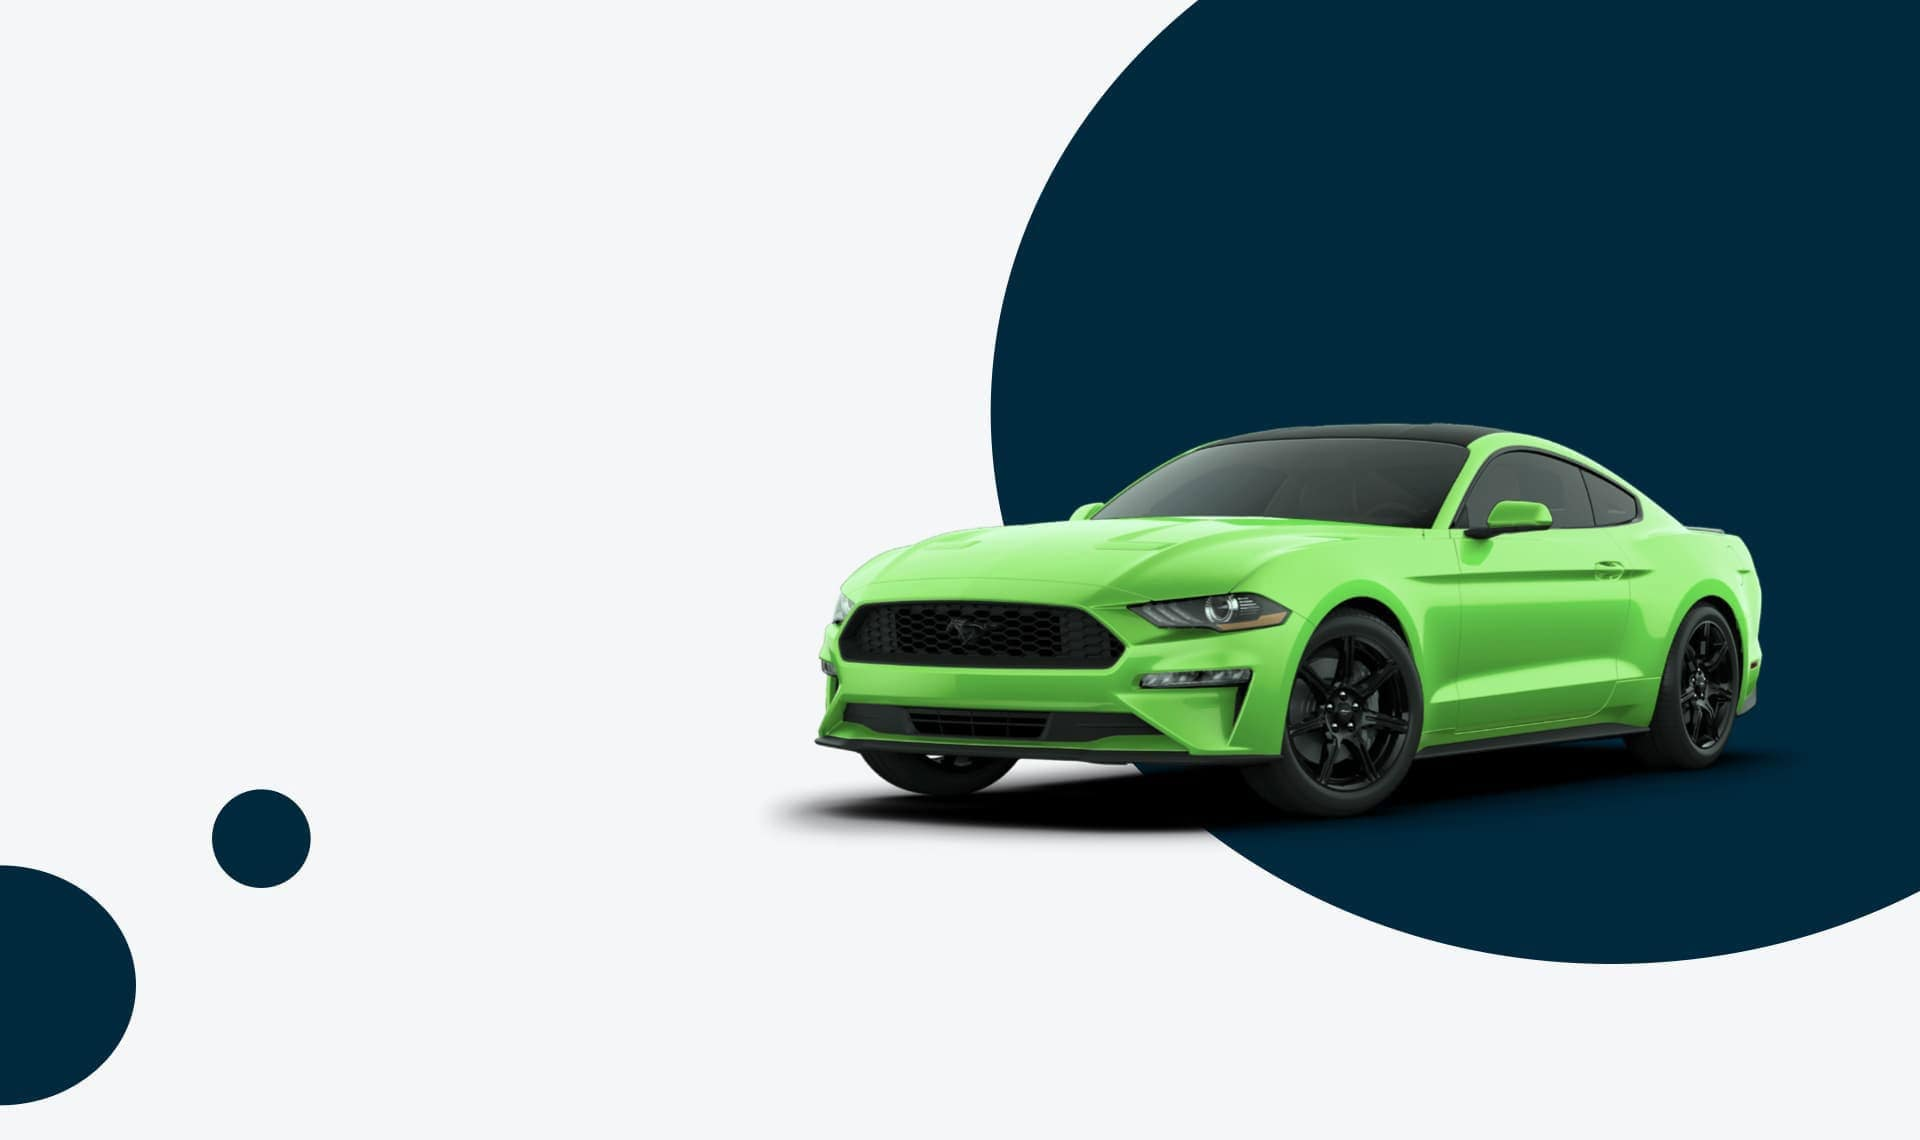 Green mustang graphic